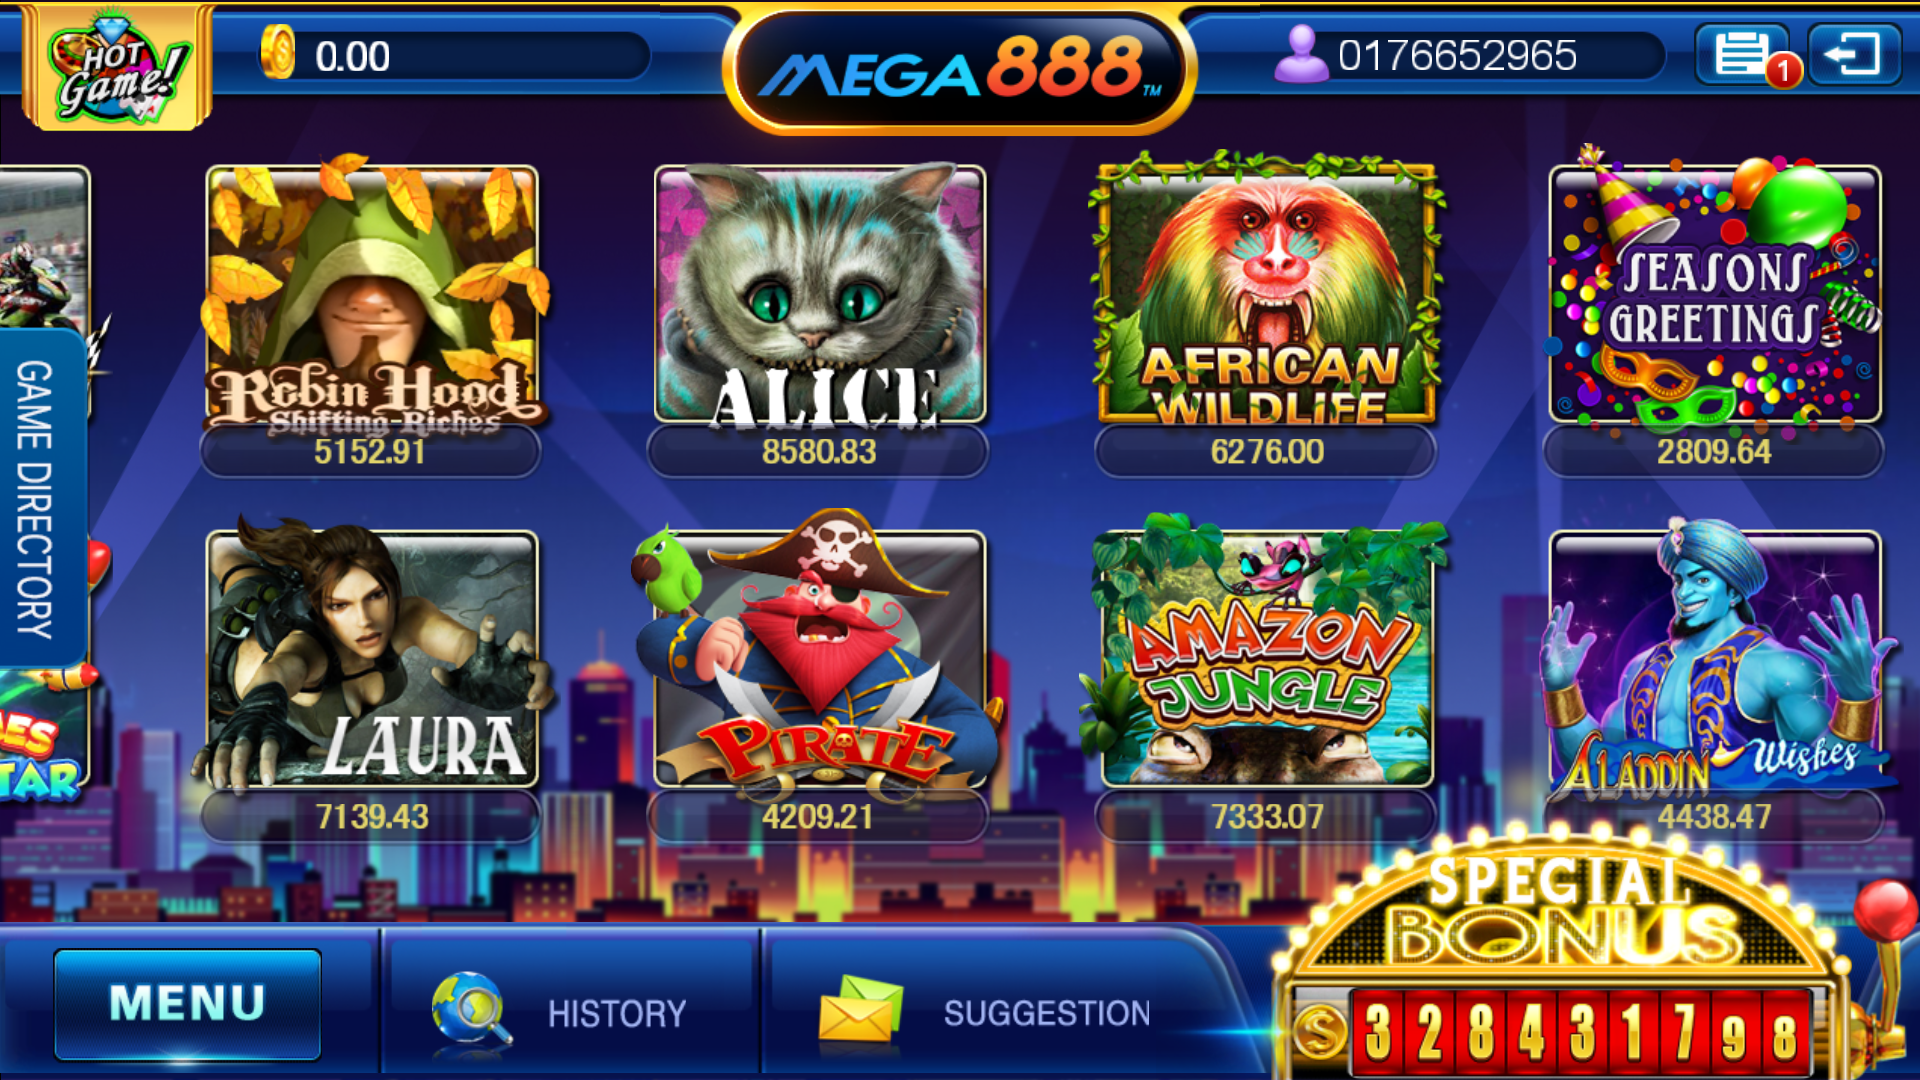 REASONS WHY MEGA888 IS THE BETTER THAN LANDED SLOTS